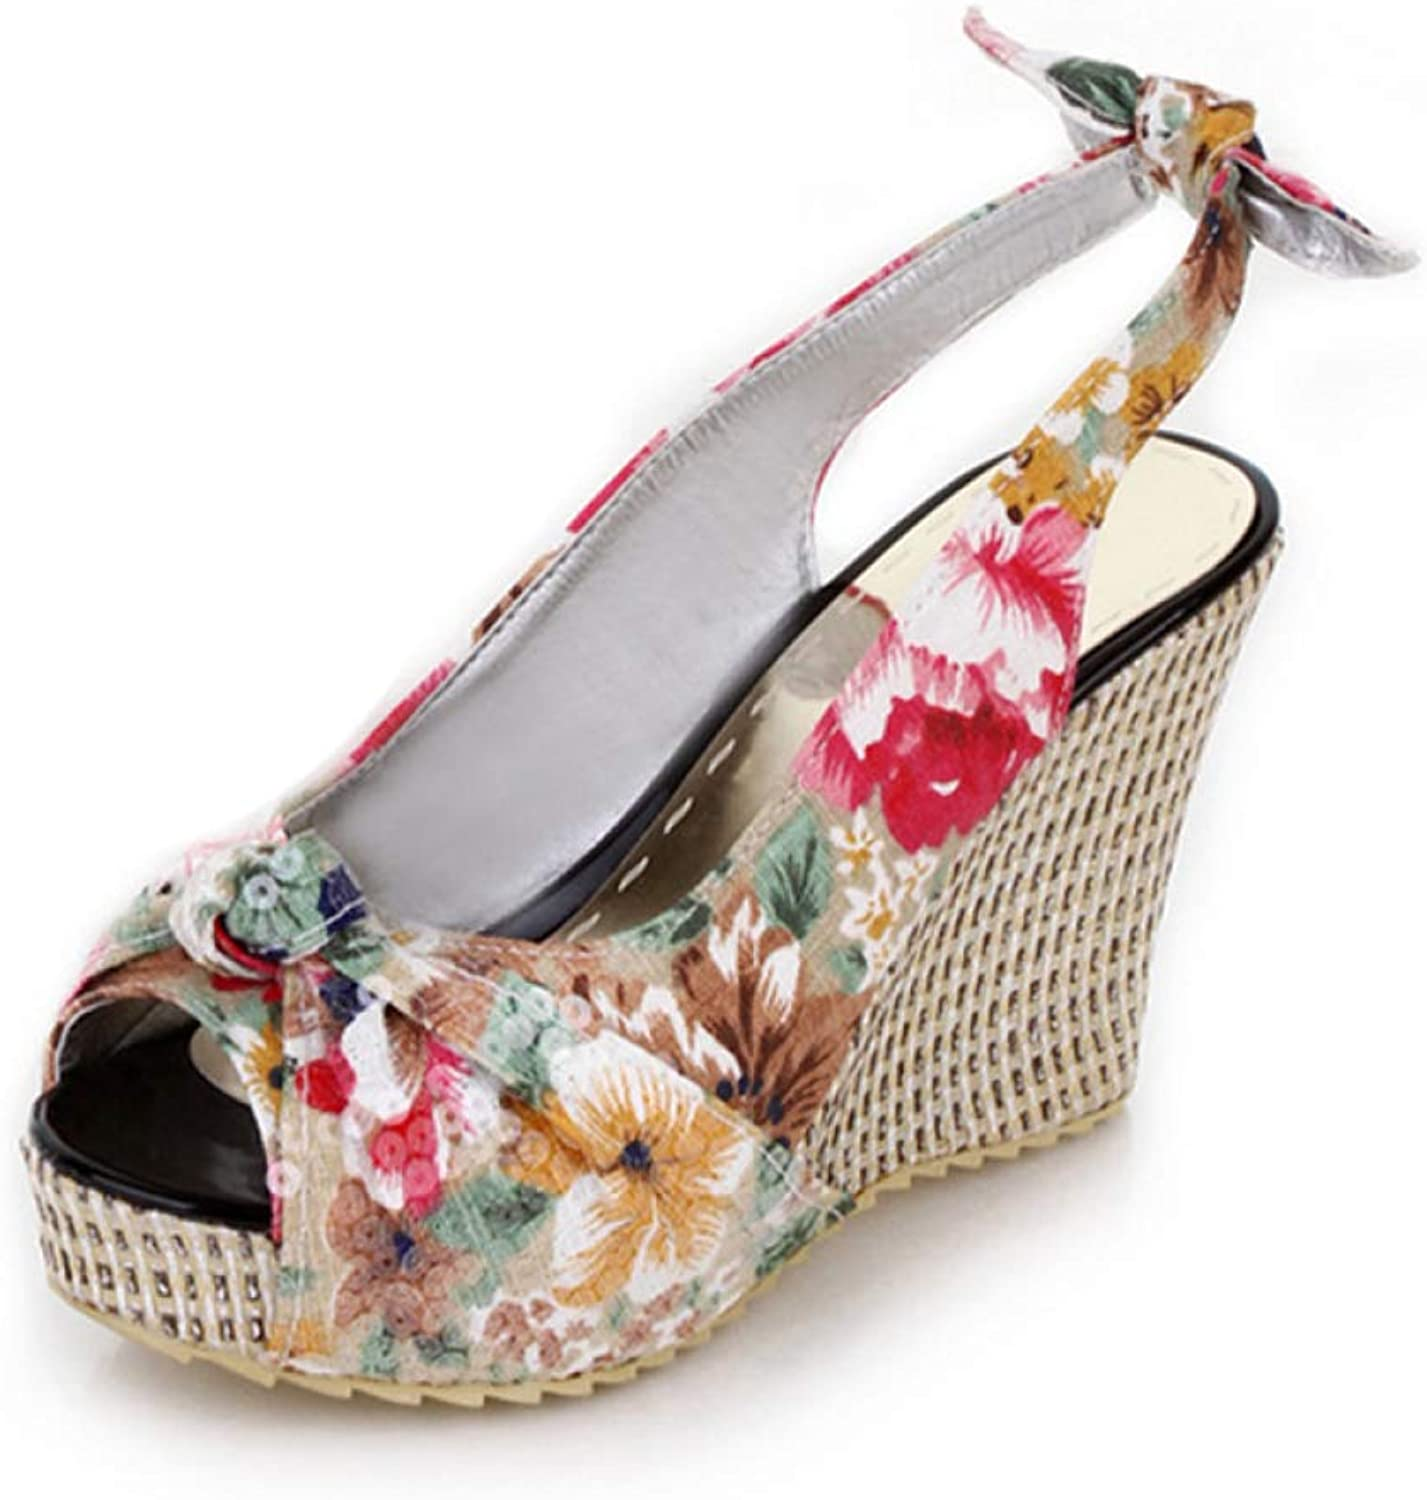 T-JULY Women Floral Printed Wedge Sandal Woman High Heels Platform Peep-Toe Beach Shallow Slingback shoes with Back Bowknot